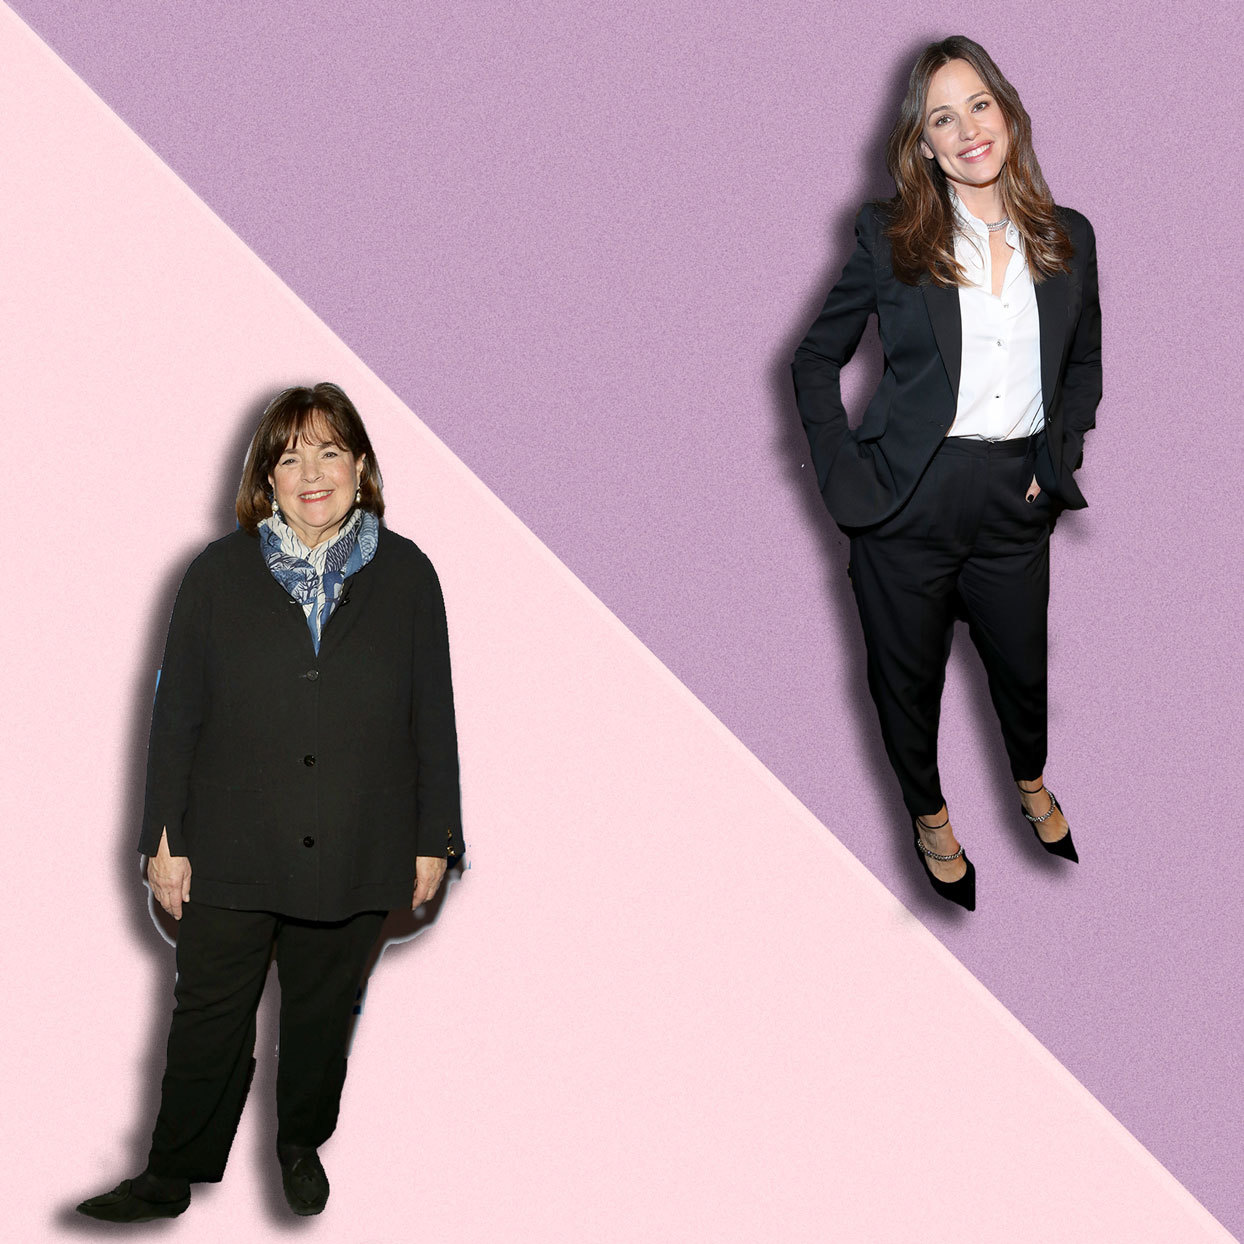 Jennifer Garner and Ina Garten